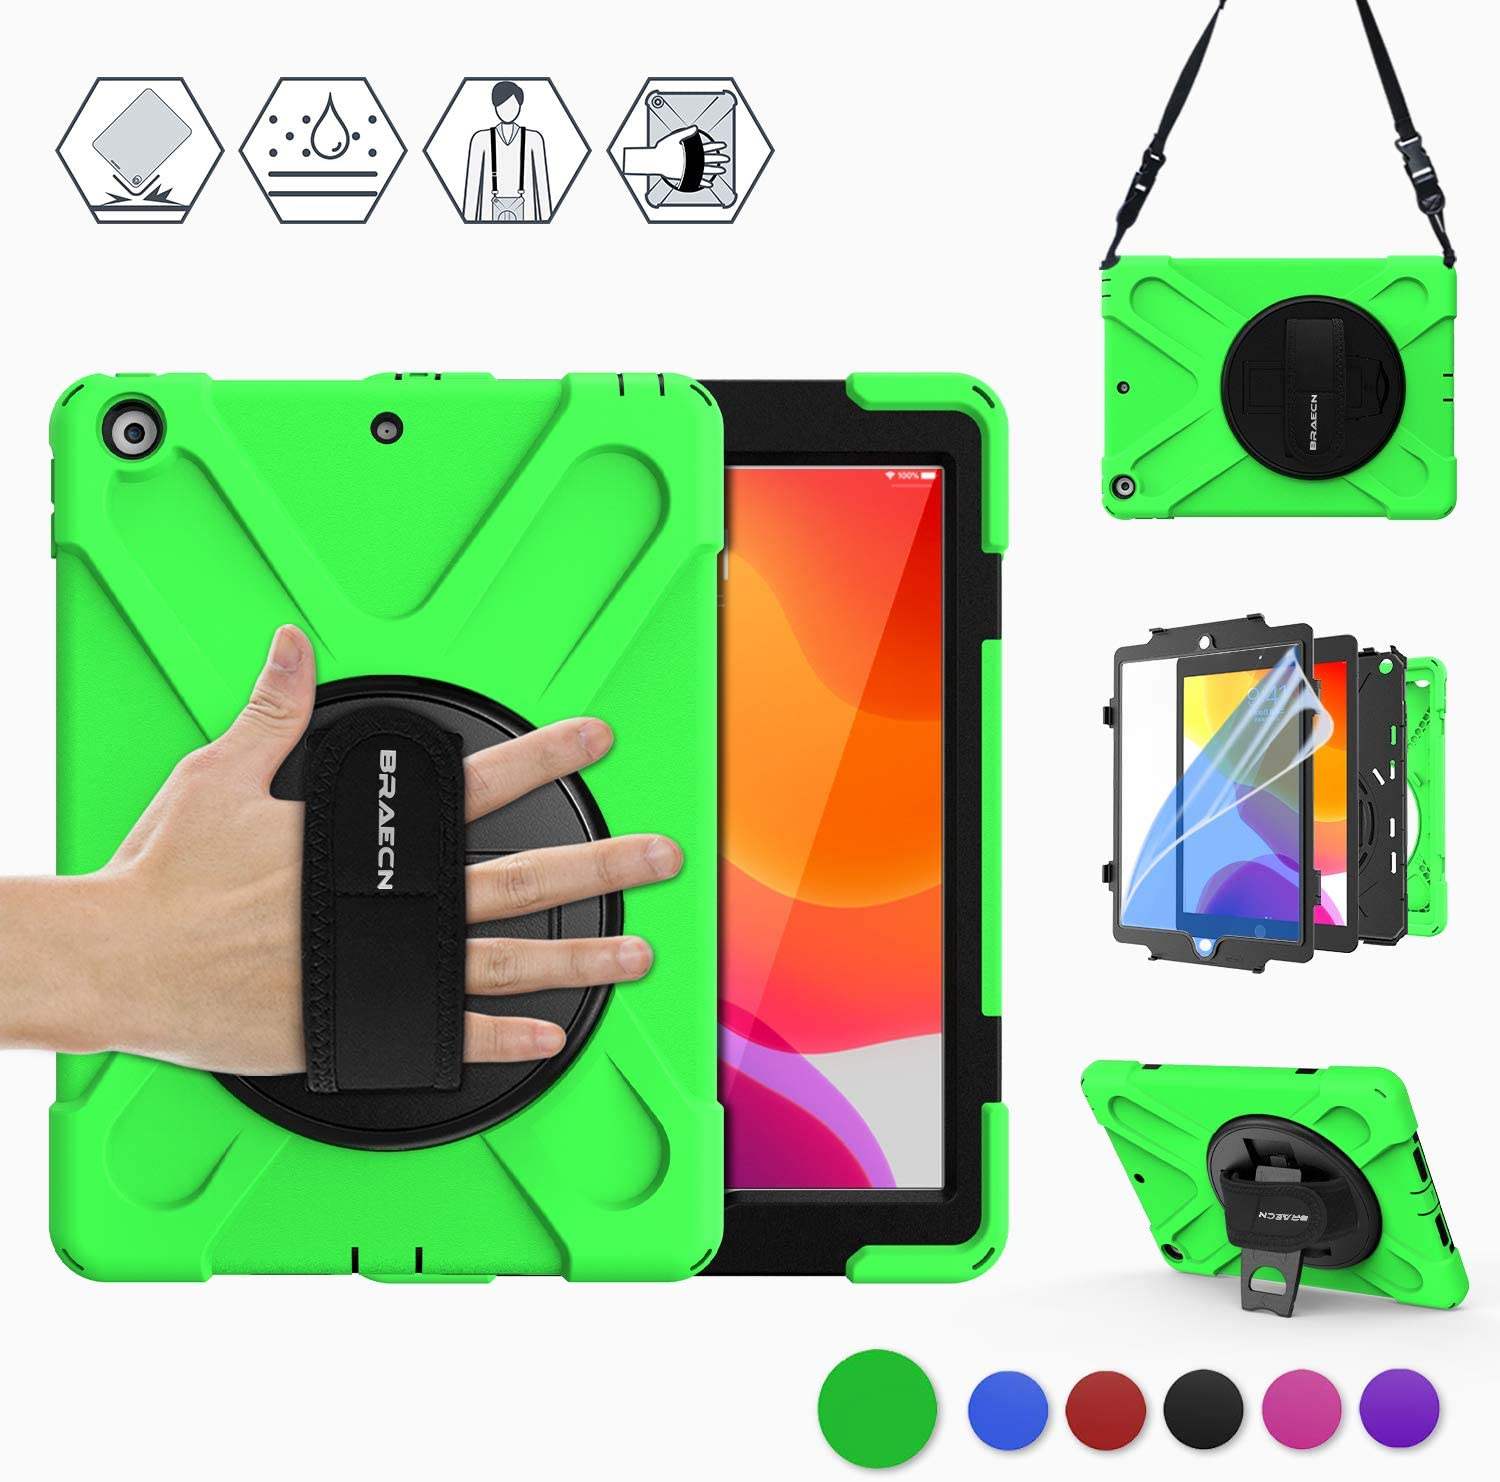 BRAECN Case for iPad 10.2 2019,iPad 7th Generation Cases,Three Layer Rugged Heavy Duty Protective Kids Case with Built-in Screen Protector,Hand/Shoulder Strap,Built-in Stand for 10.2 iPad Case-Green